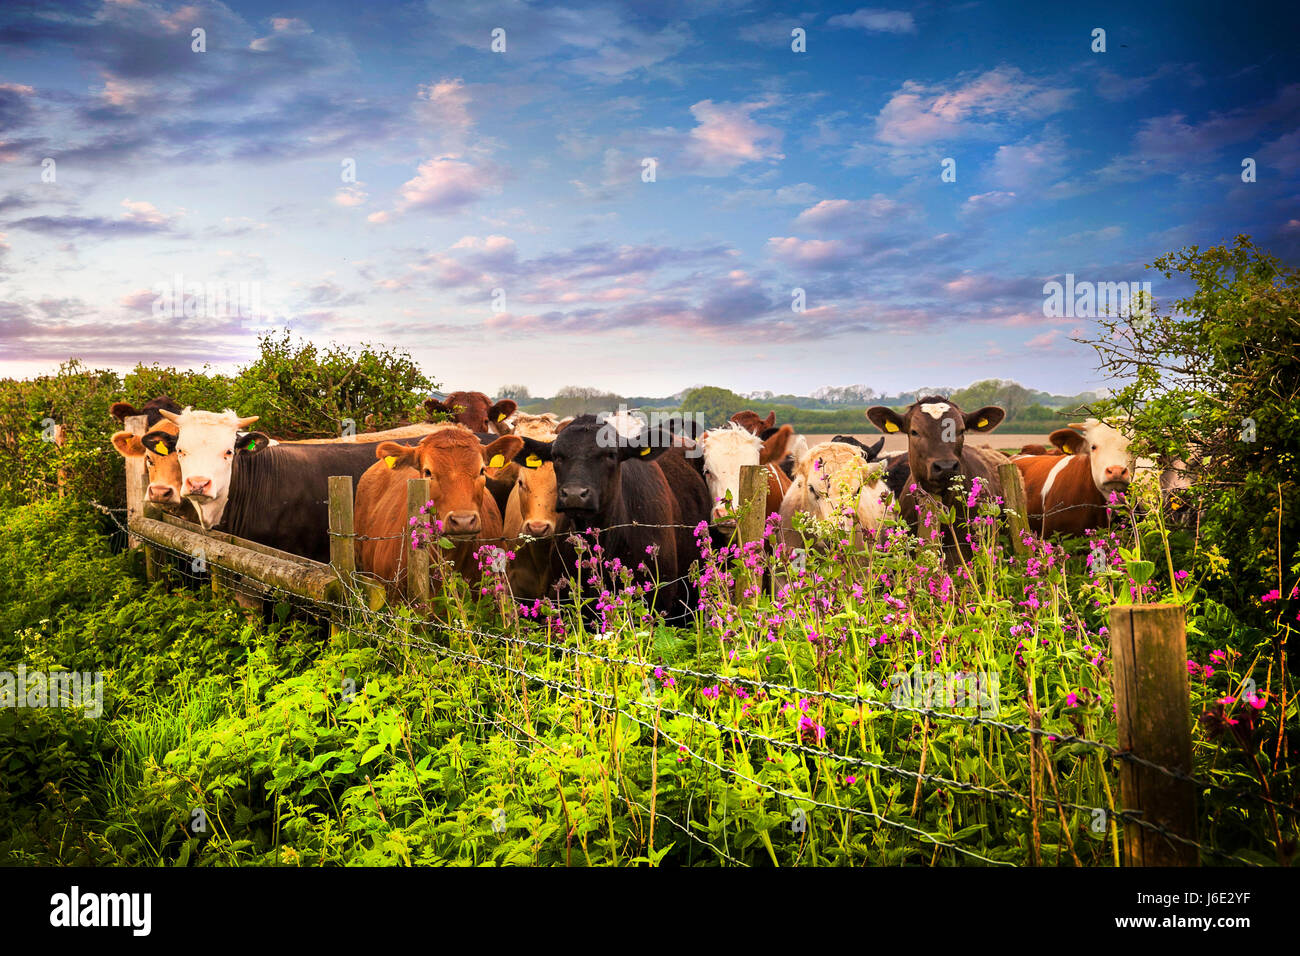 A herd of cows looking curiously over the fence in a rural Dorset pasture - Stock Image